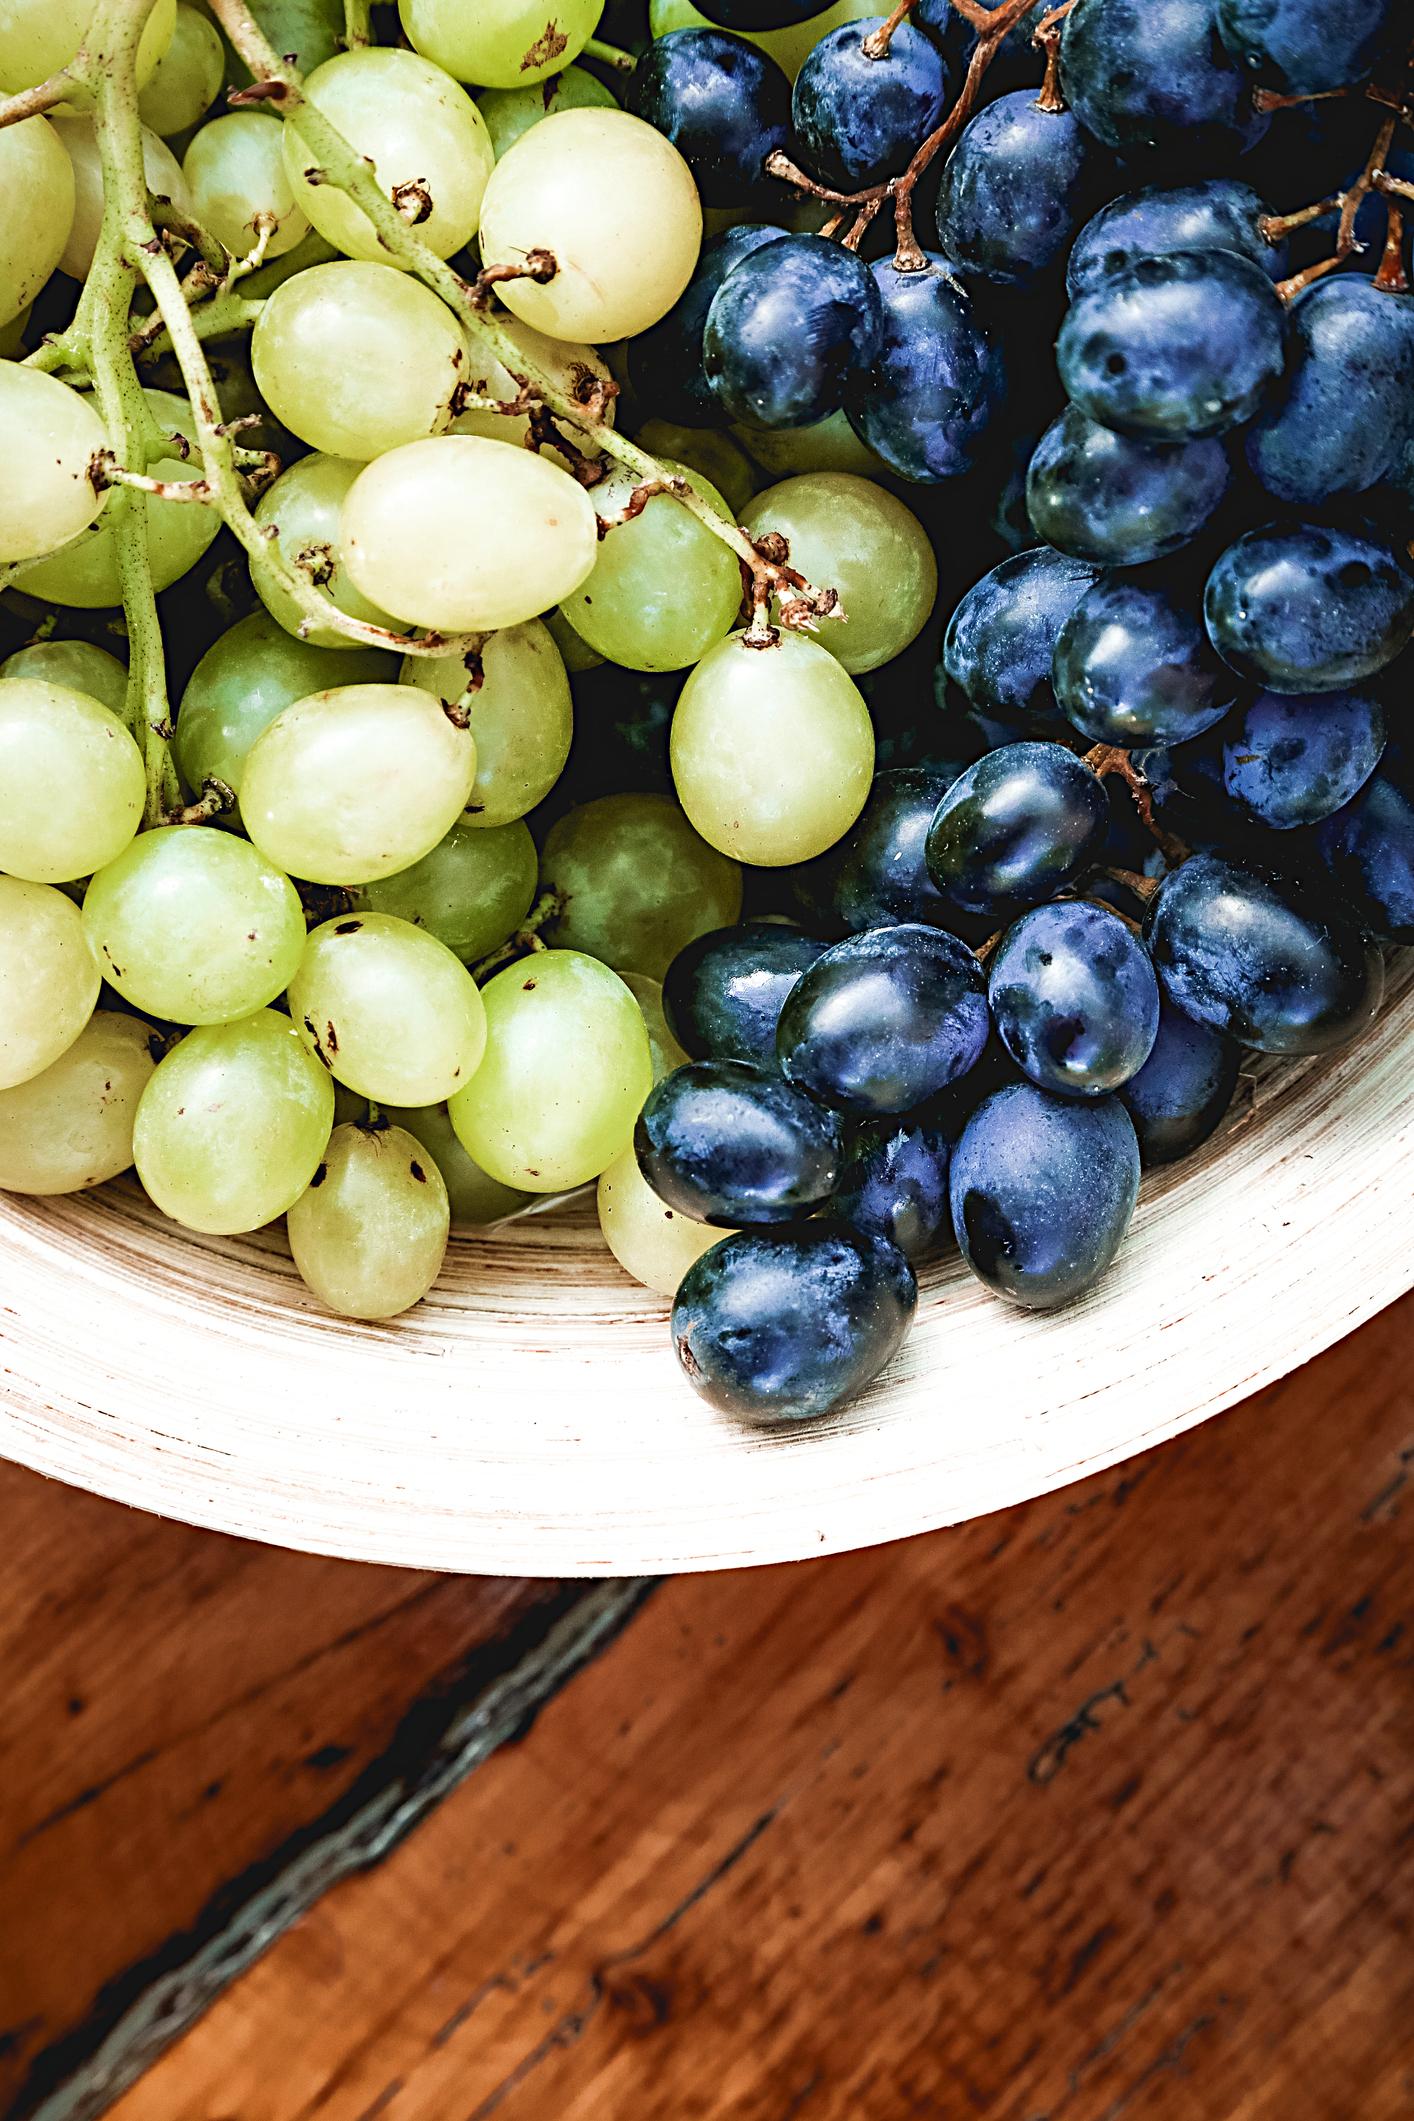 Fresh organic grapes in wooden bowl on rustic wooden table